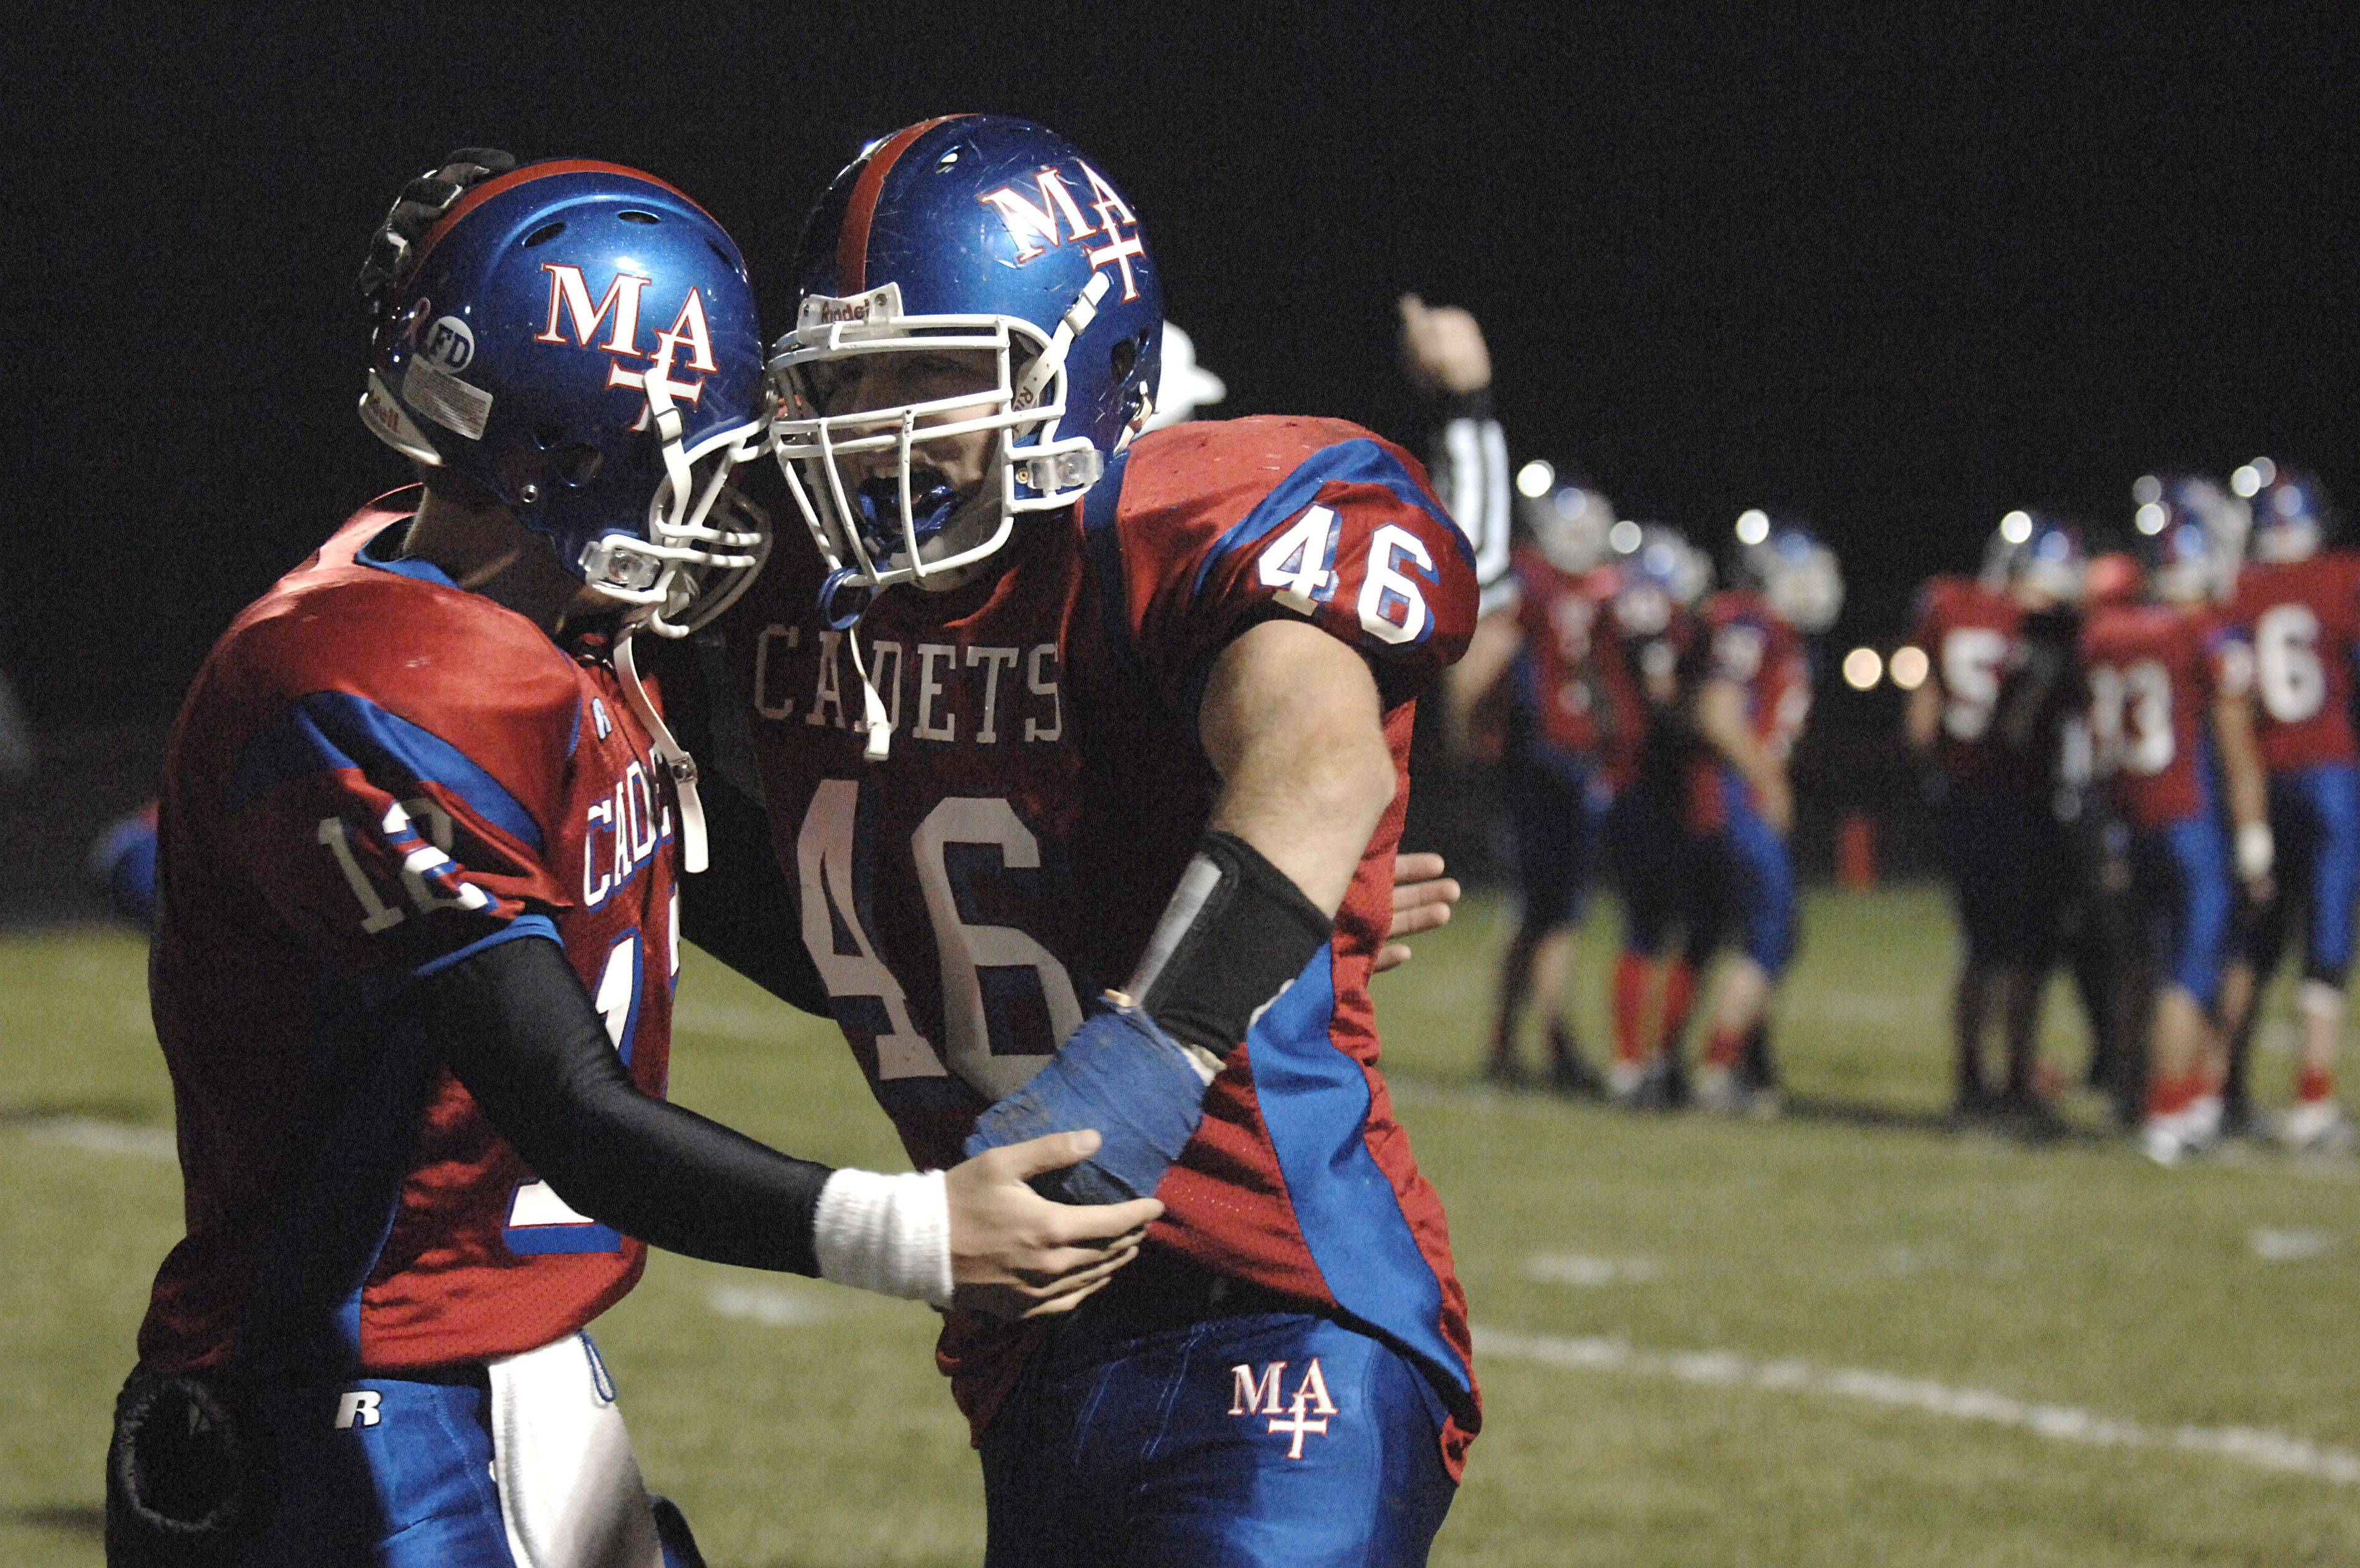 Marmion quarterback Bobby Peters congratulates T.J. Lally after his completed pass scored a touchdown in the second quarter bringing the score to 23-0 vs Thorton Fractional North on Friday, October 29.